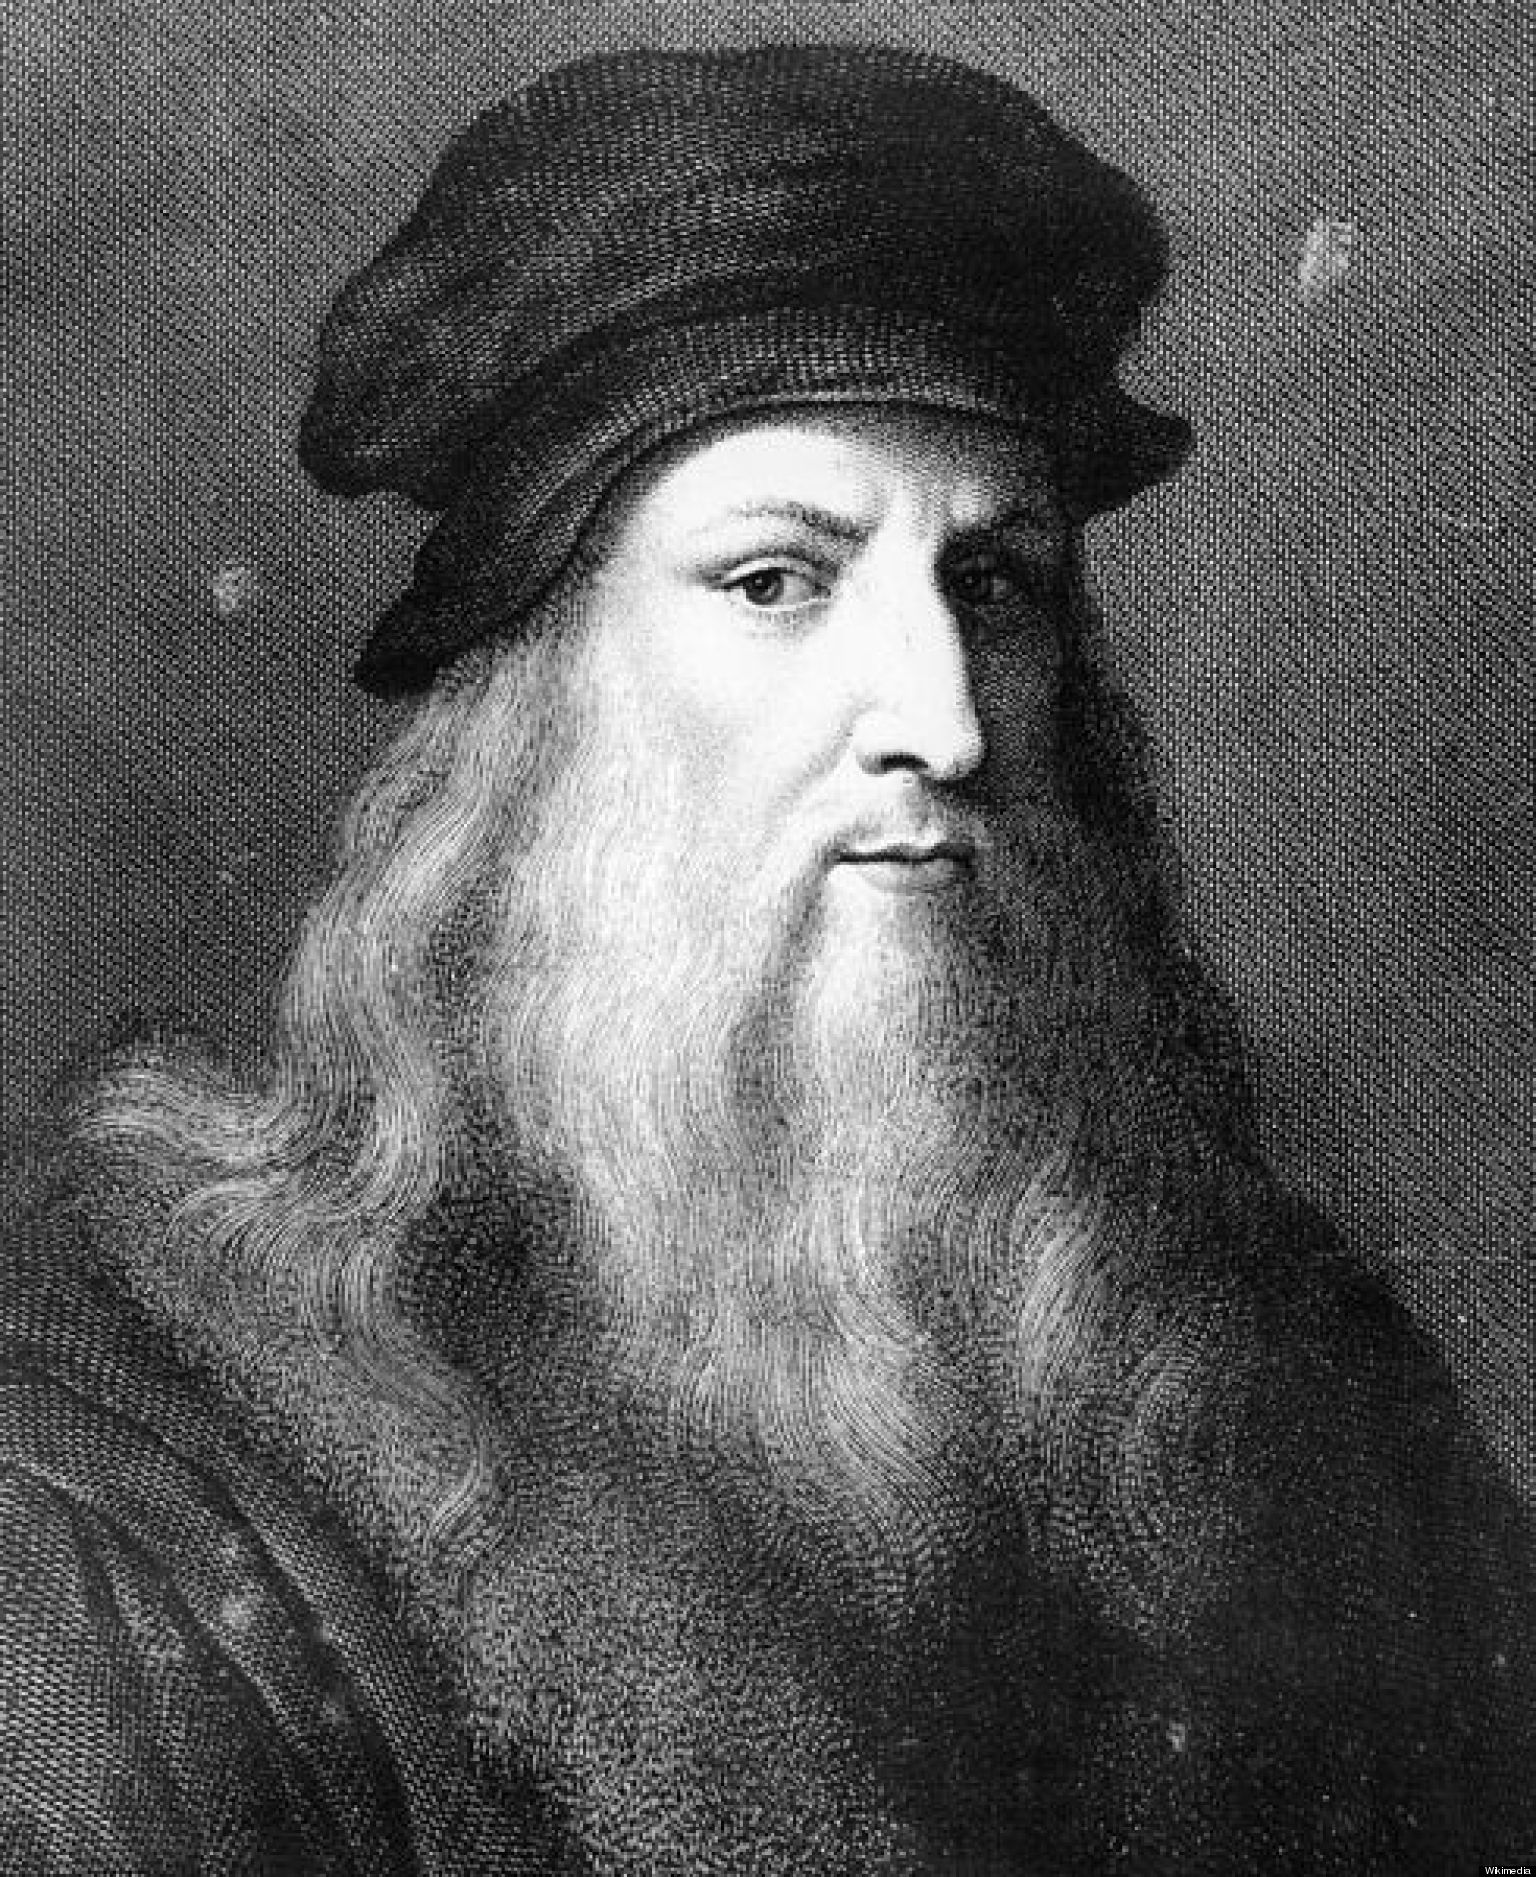 A look at the life and works of leonardo da vinci